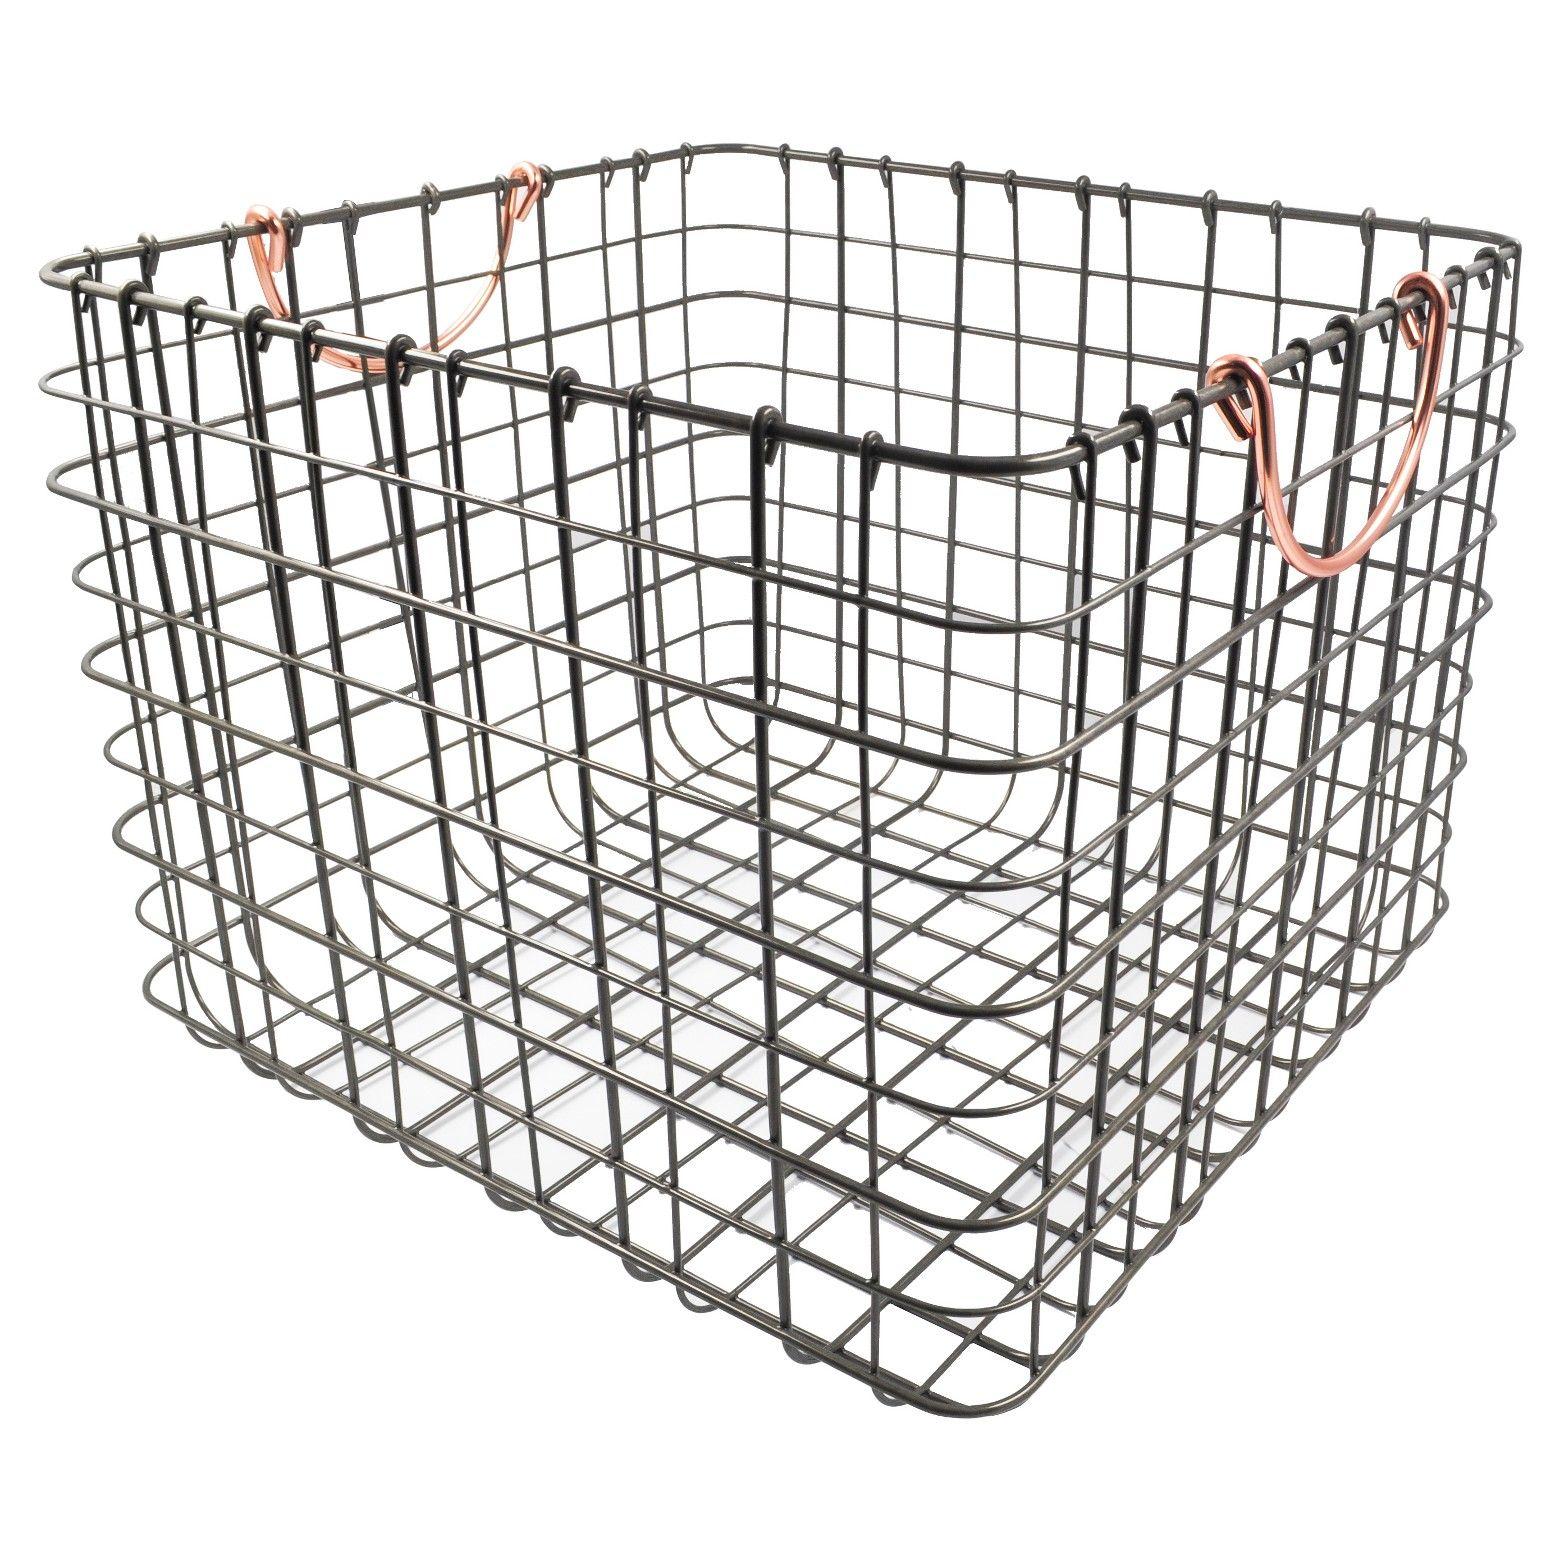 Large Wire Milk Crate With Handles Copper Threshold Milk Crates Decorative Storage Bins Copper Handles